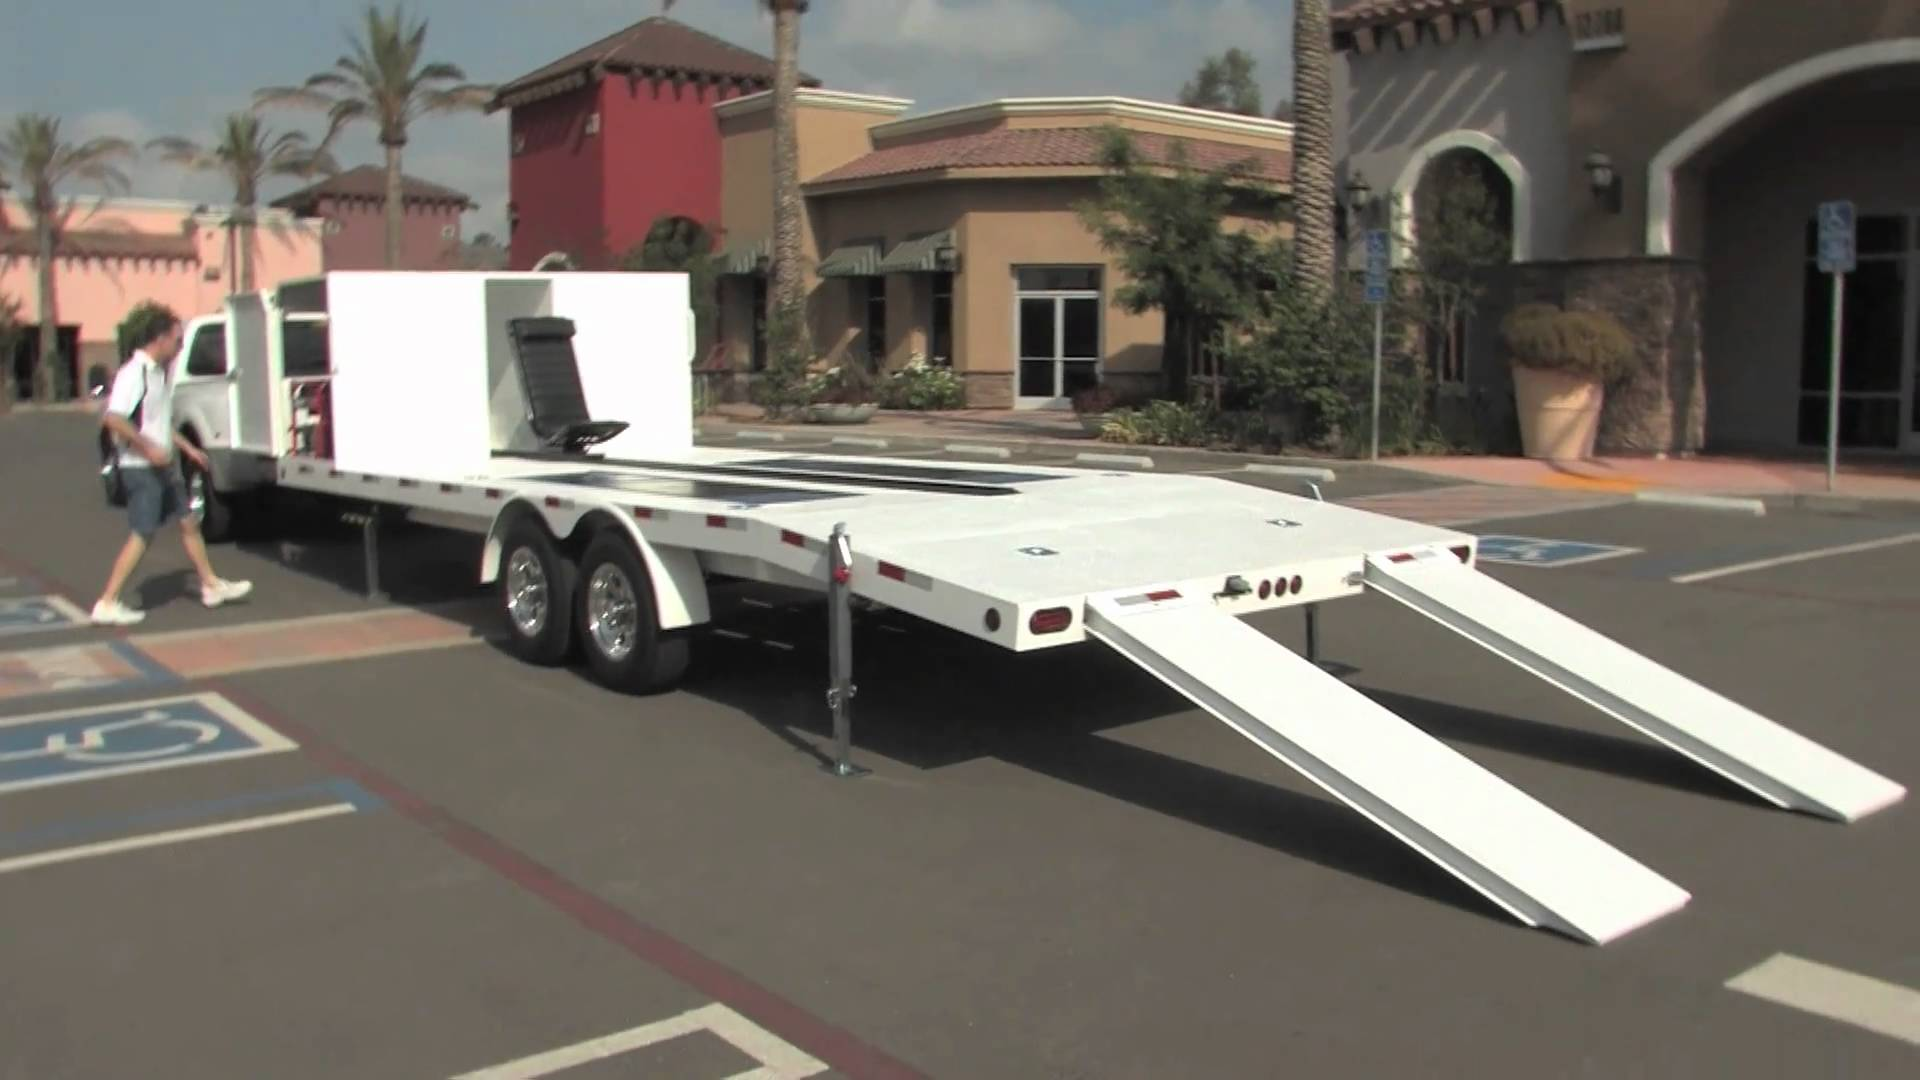 MethBuster Mobile Trailer Lift Auto Car Vehicle Maintenance Inspection Service Work Platform